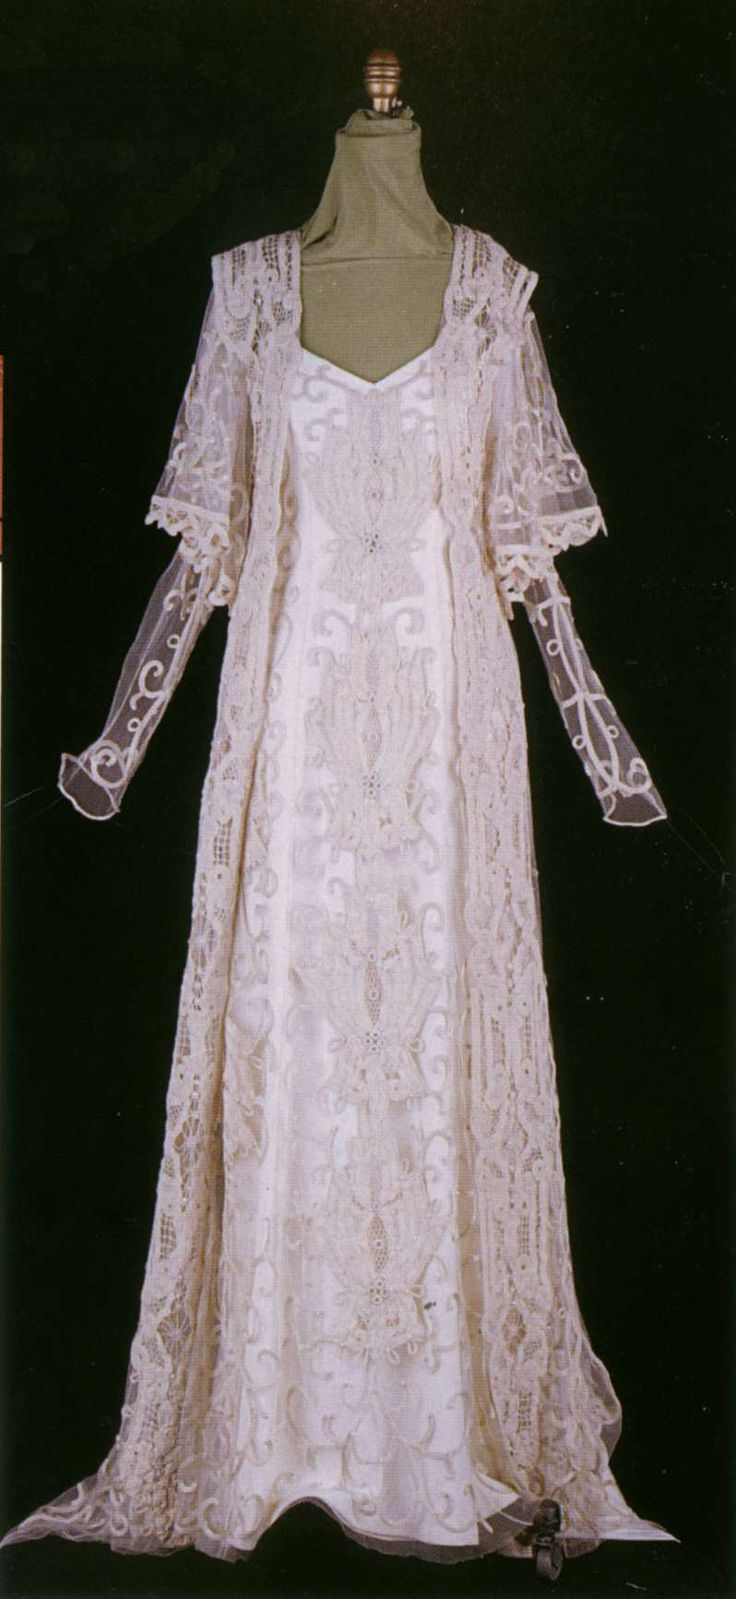 Attack of the Clones - Wedding Dress-- Been in love with this dress since the movie first came out! :)